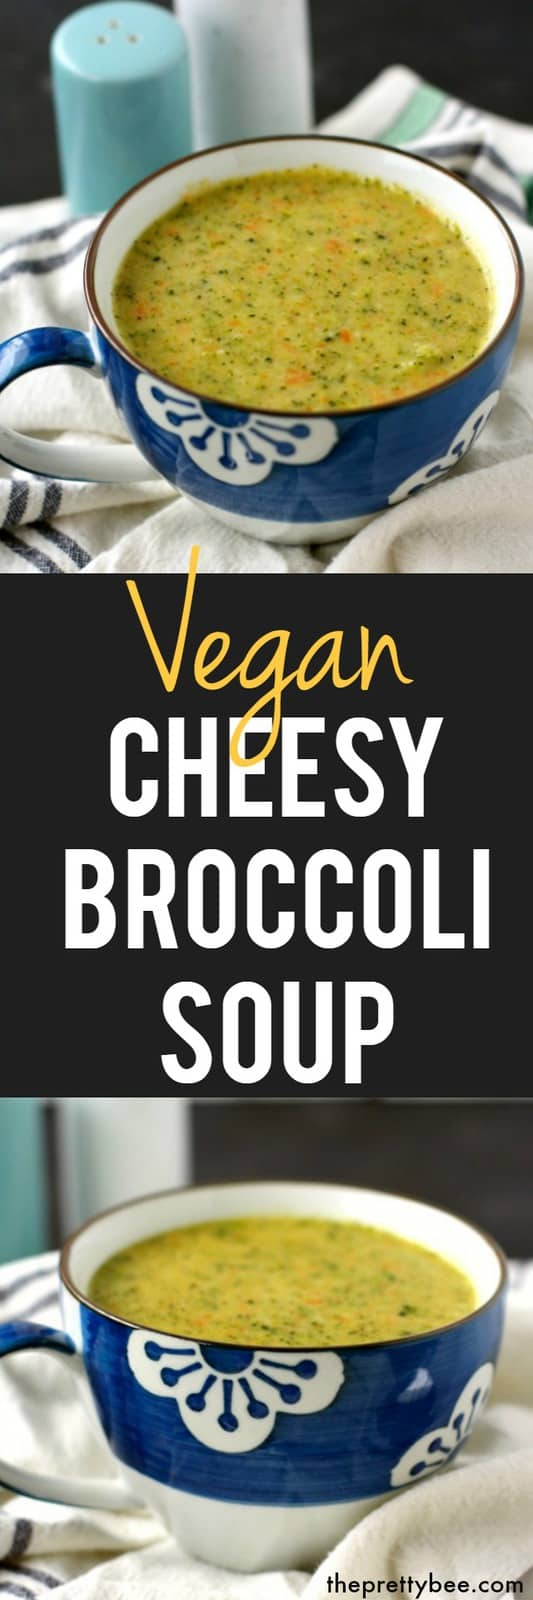 This vegan cheesy broccoli soup is so delicious on a cool day! It's rich, creamy, and cheesy! #vegan #plantbased #dairyfree #glutenfree